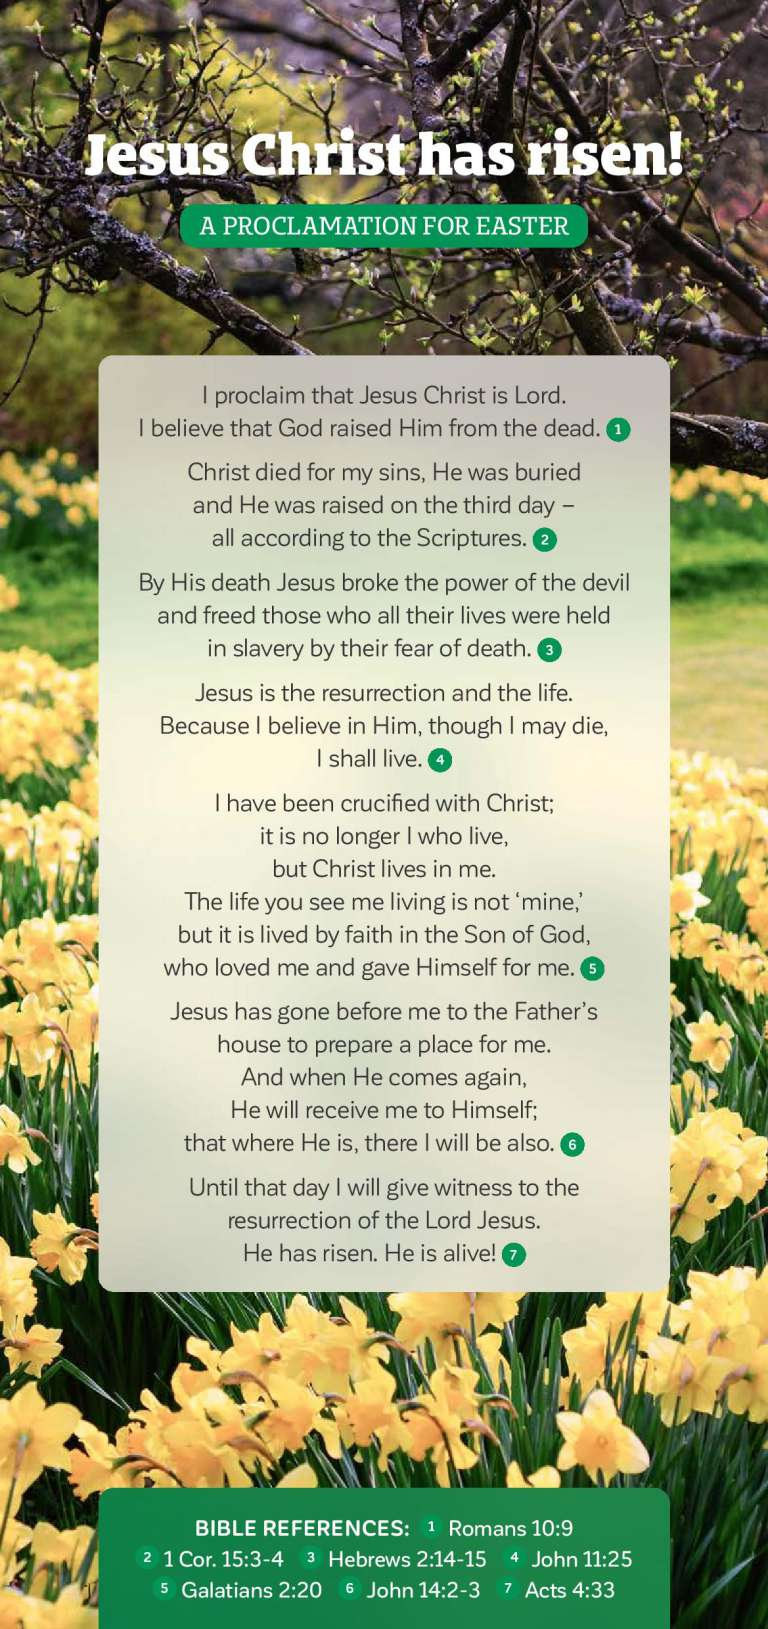 A Proclamation For Easter - Jesus Christ has risen!